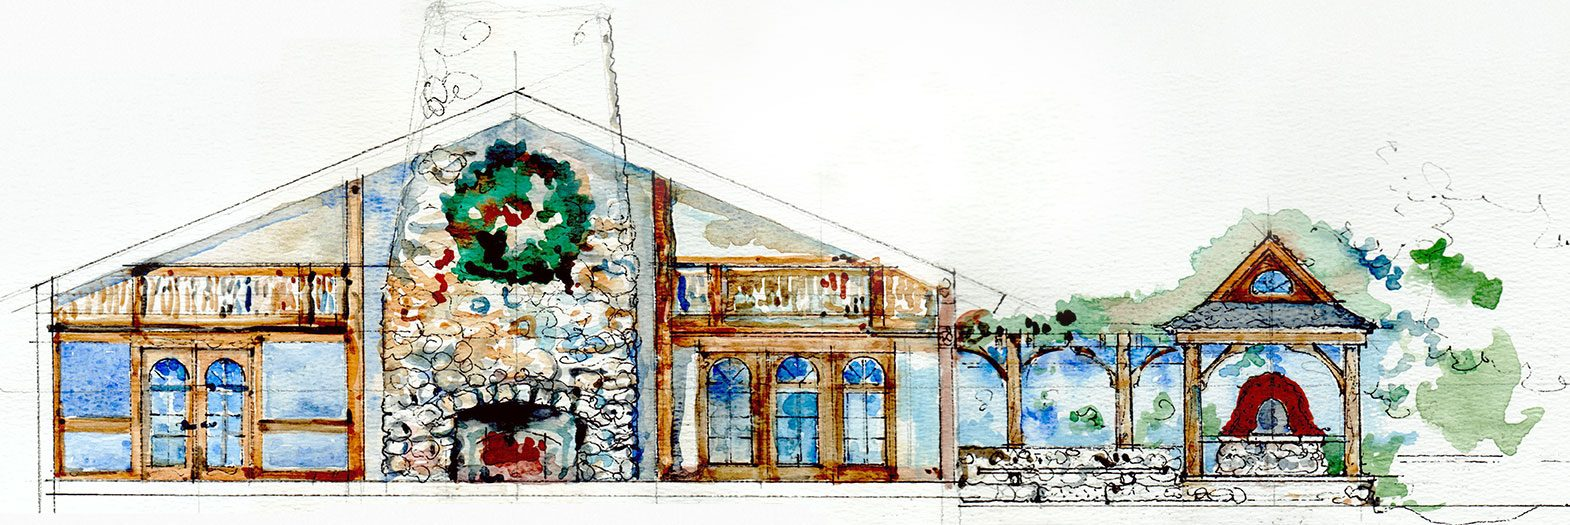 Watercolor stonewall farm rendering